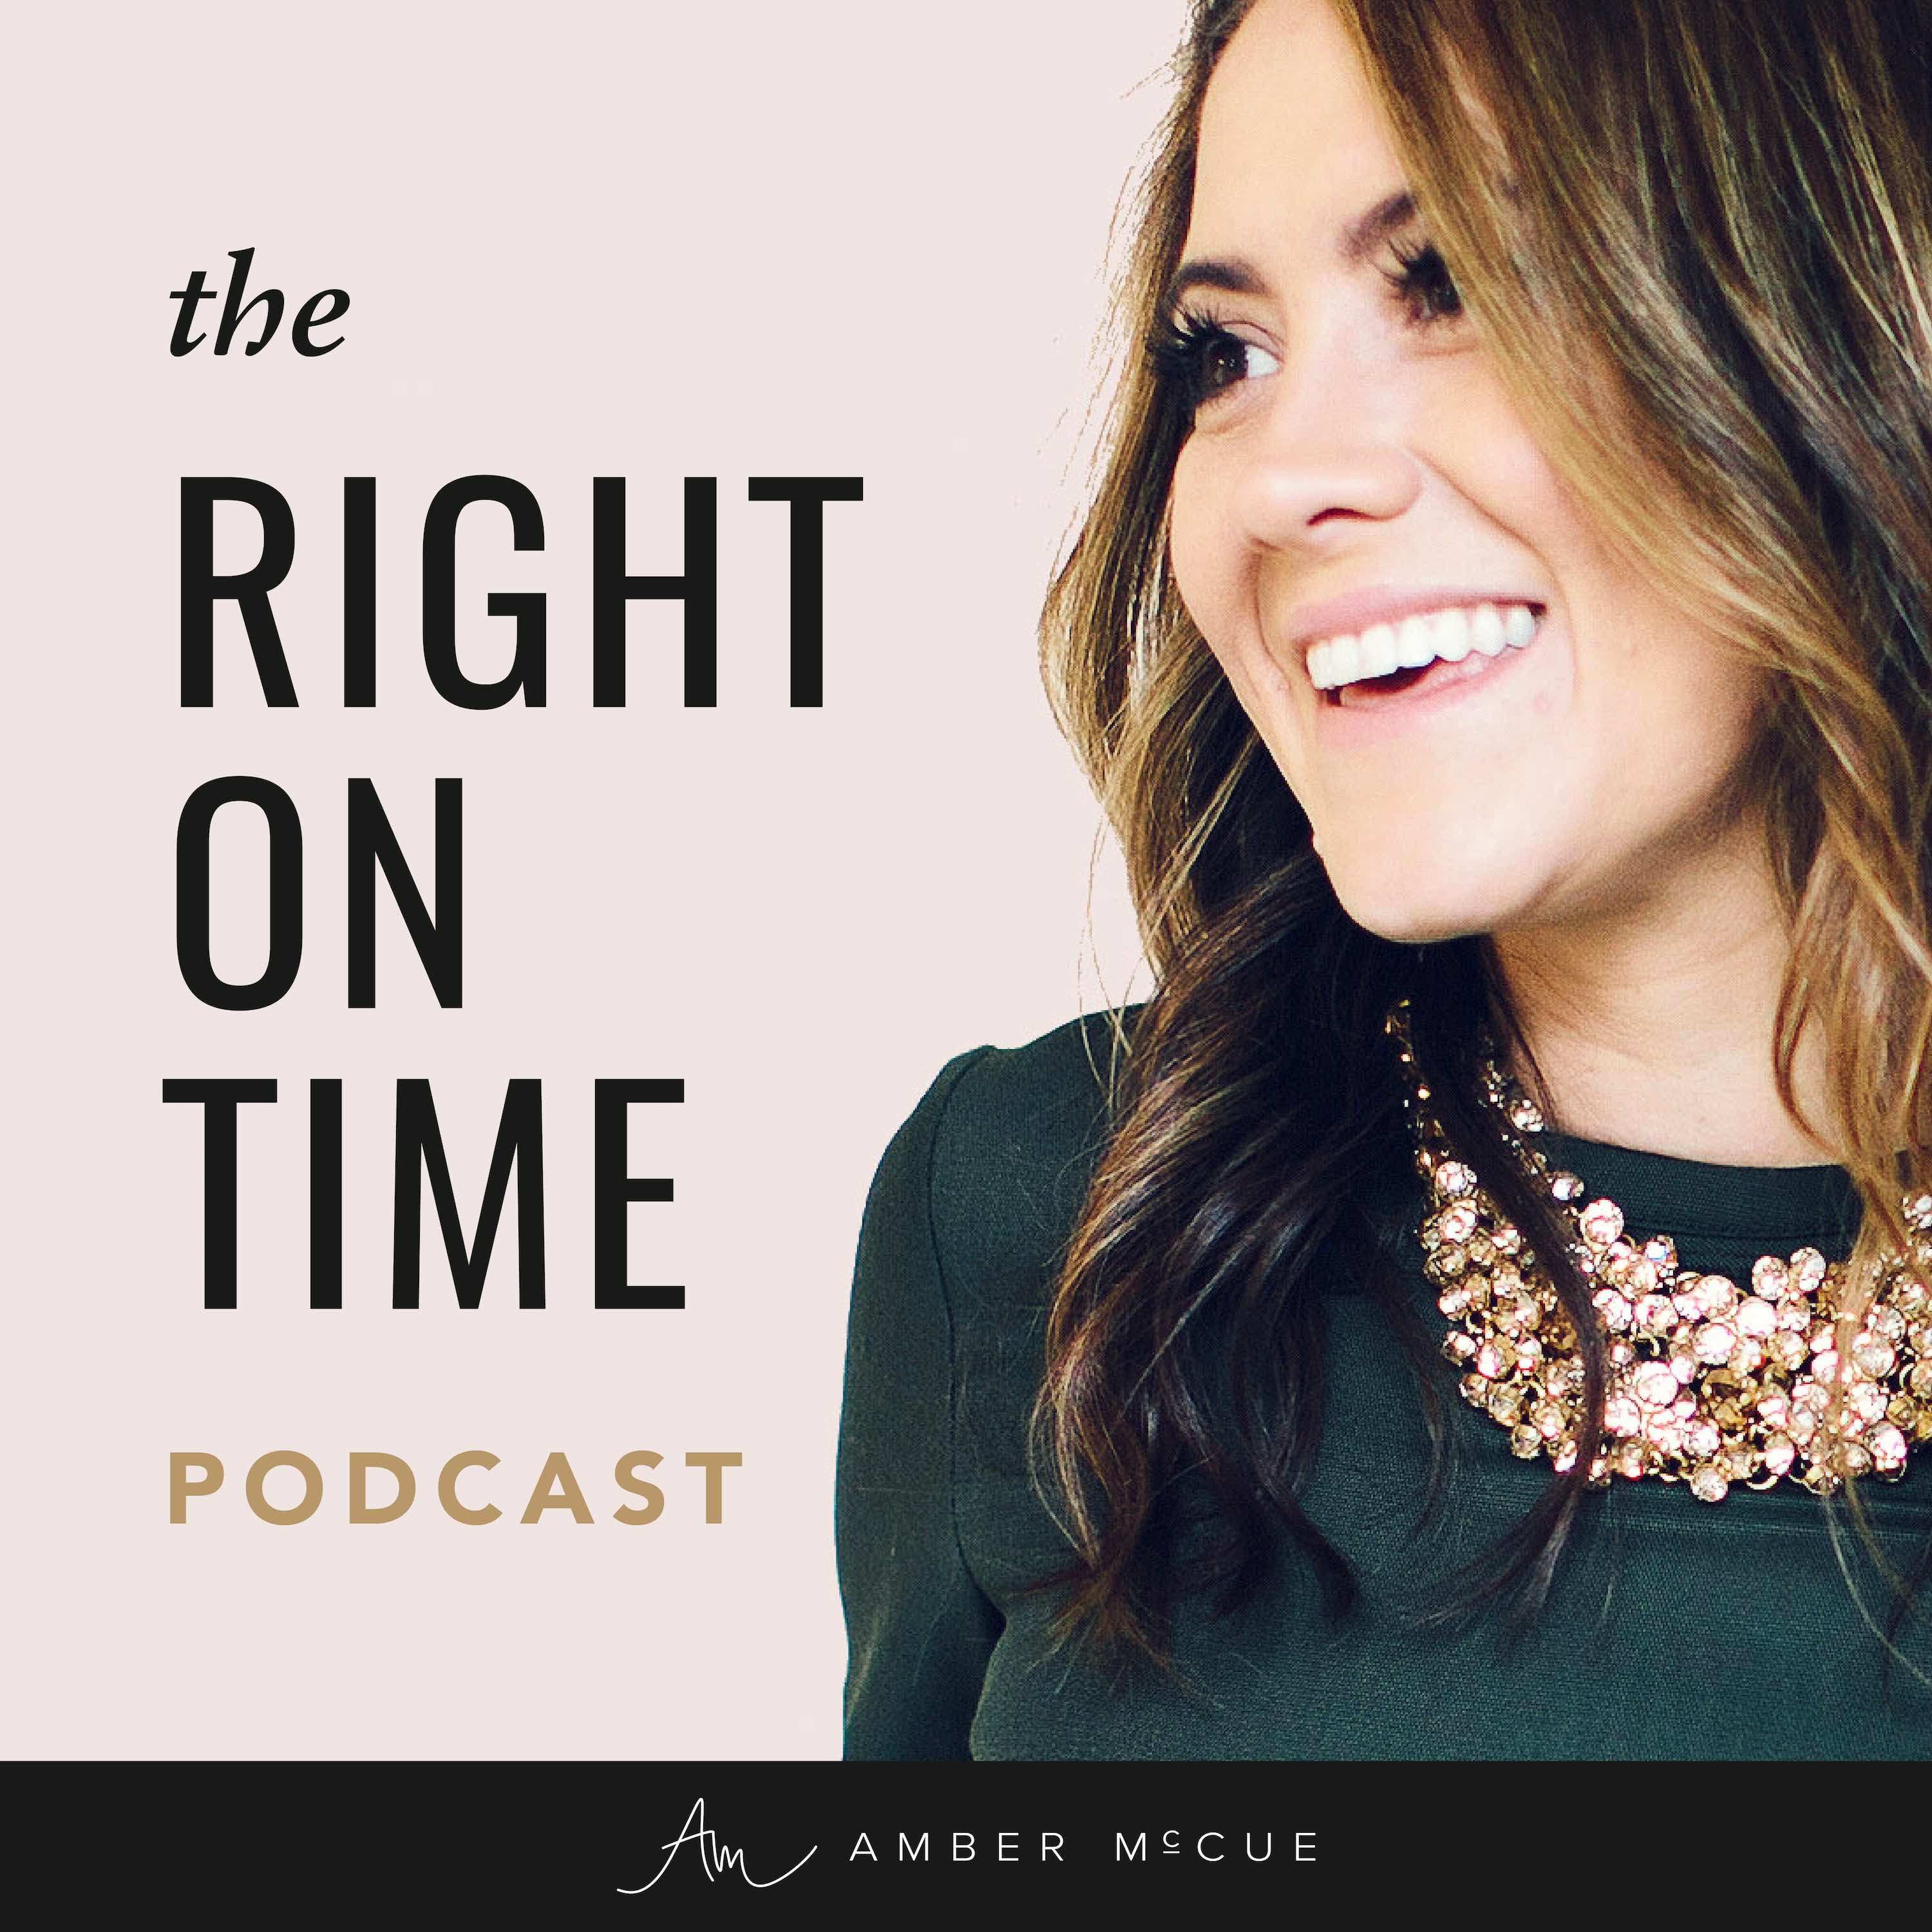 Right on Time Podcast show art